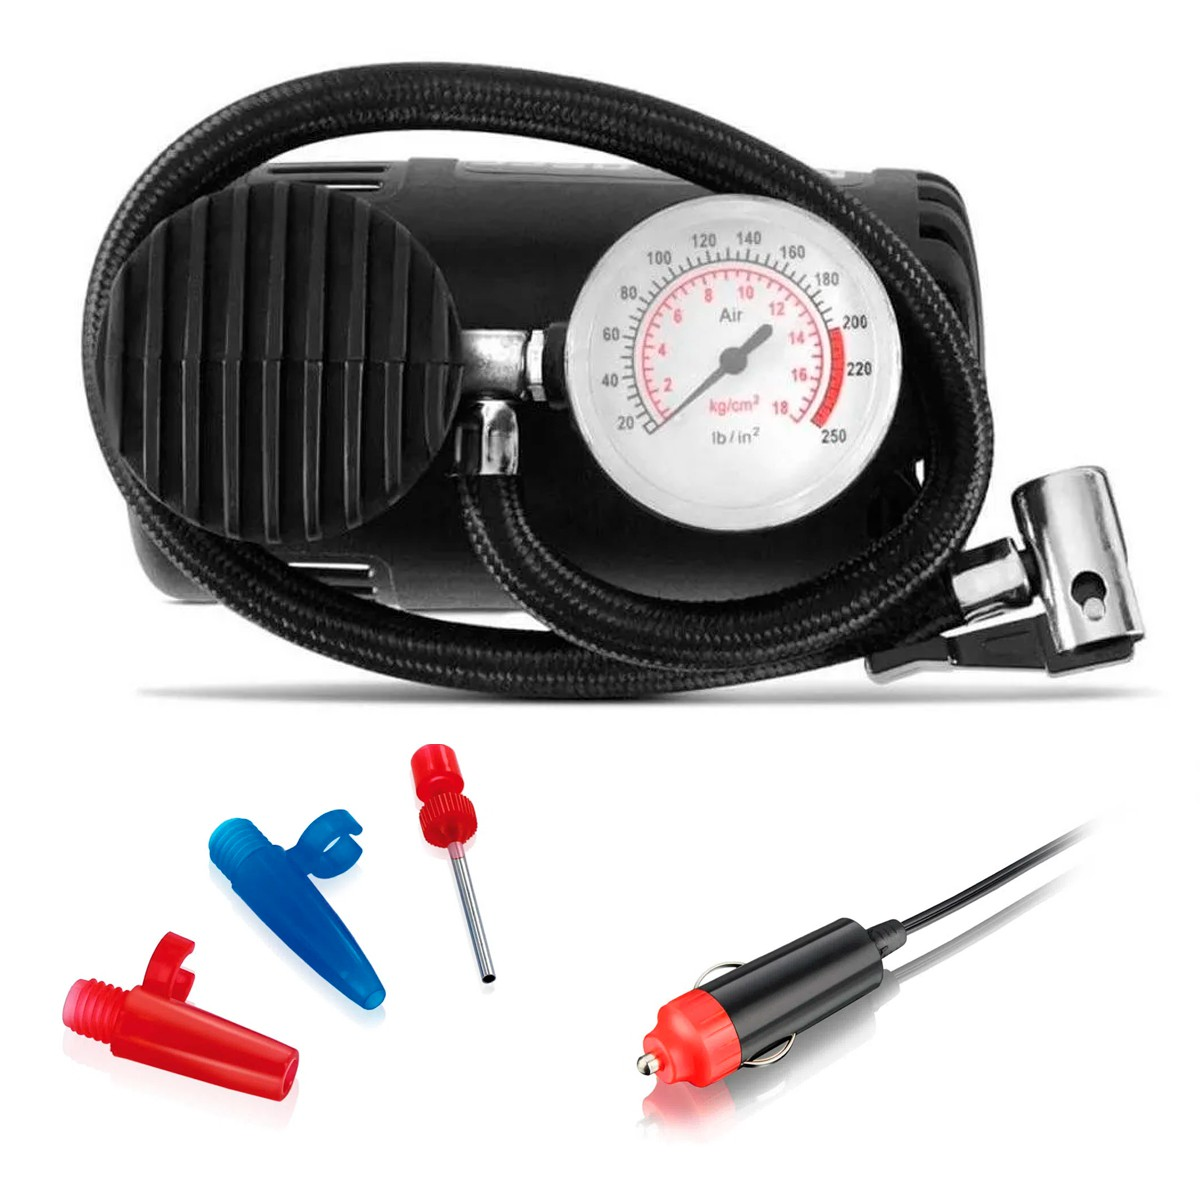 Mini Compressor Ar Automotivo Portátil 250psi Multilaser 12v